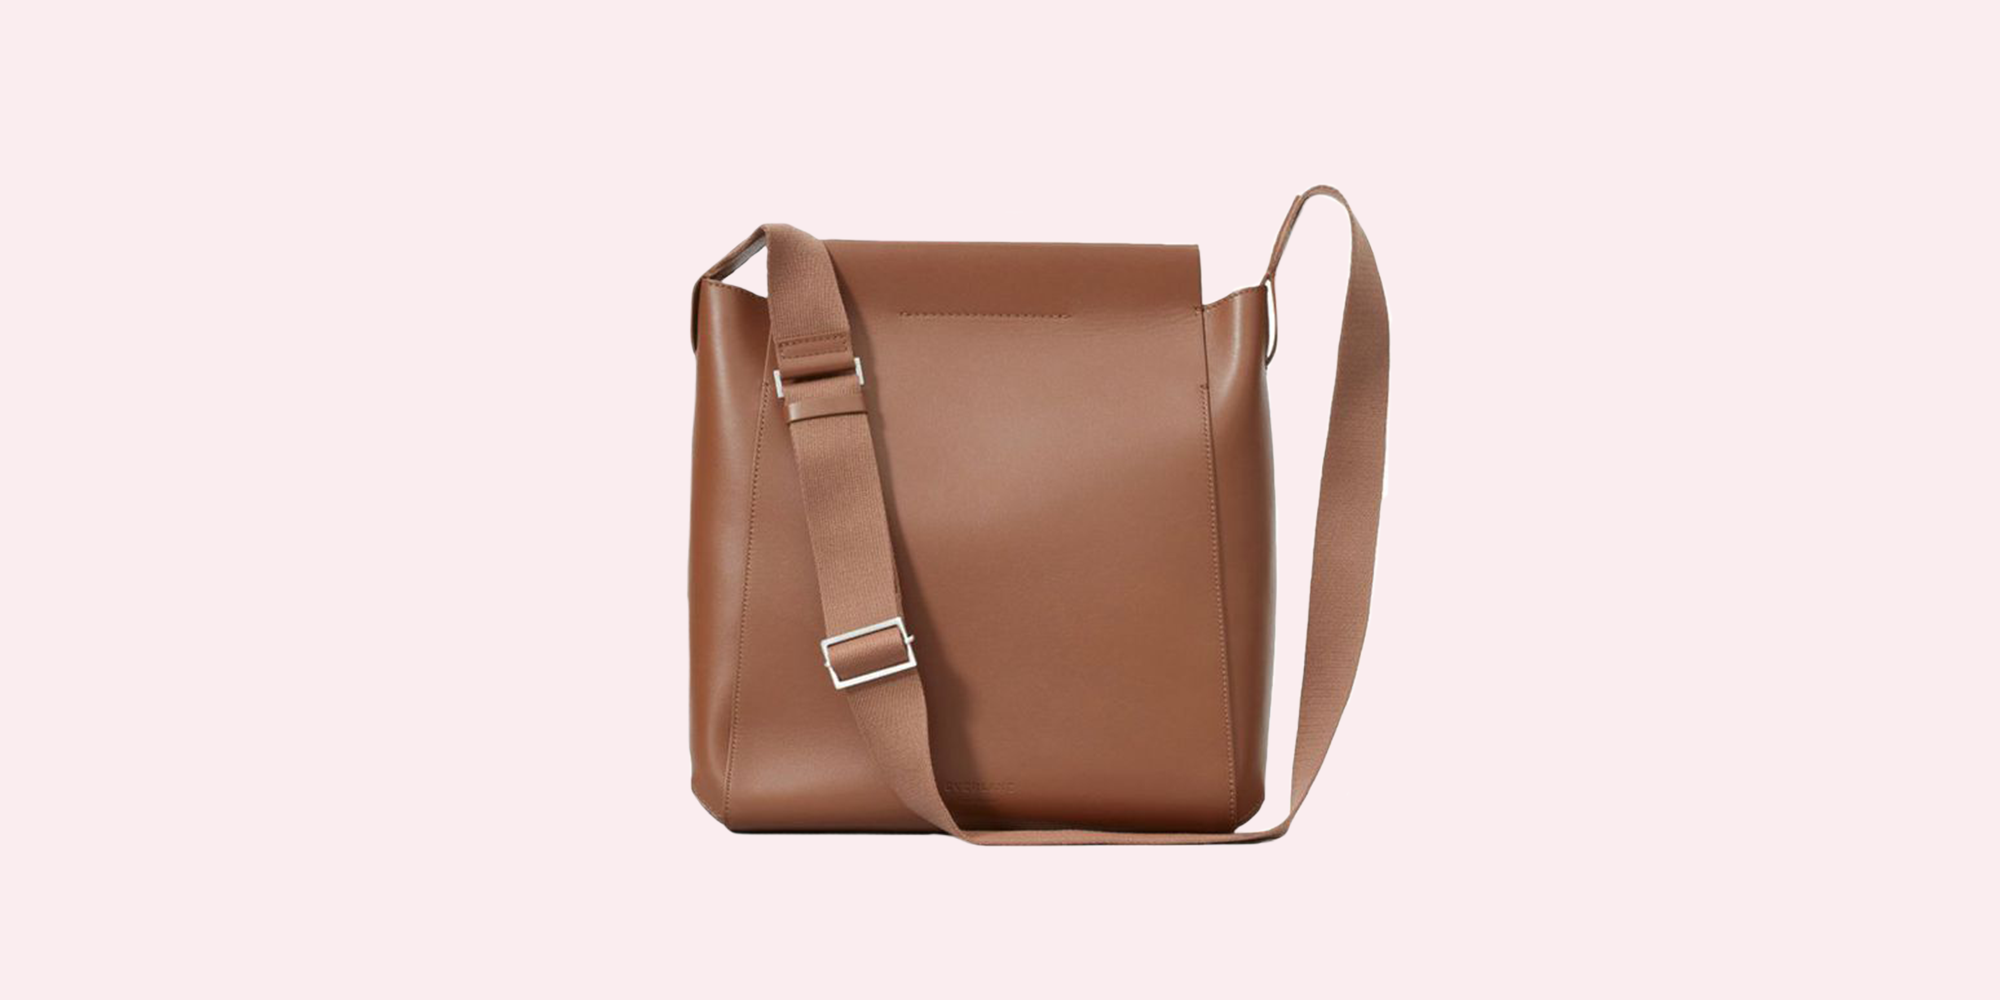 5f5633d62 13 Best Laptop Bags for Women 2019 - Stylish Computer Totes and Handbags